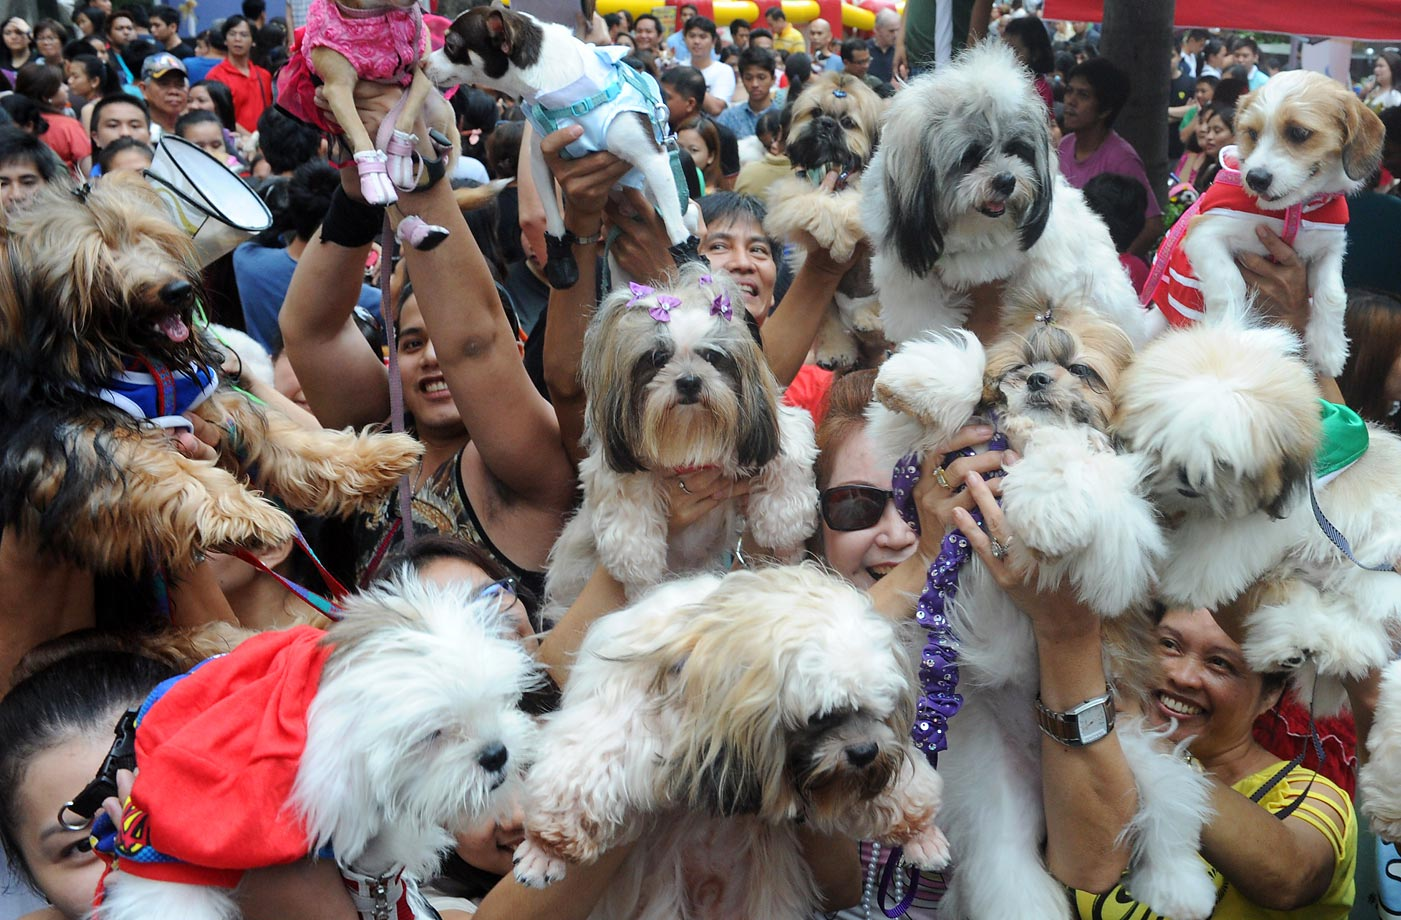 The scene from World Animal Day in Manila.